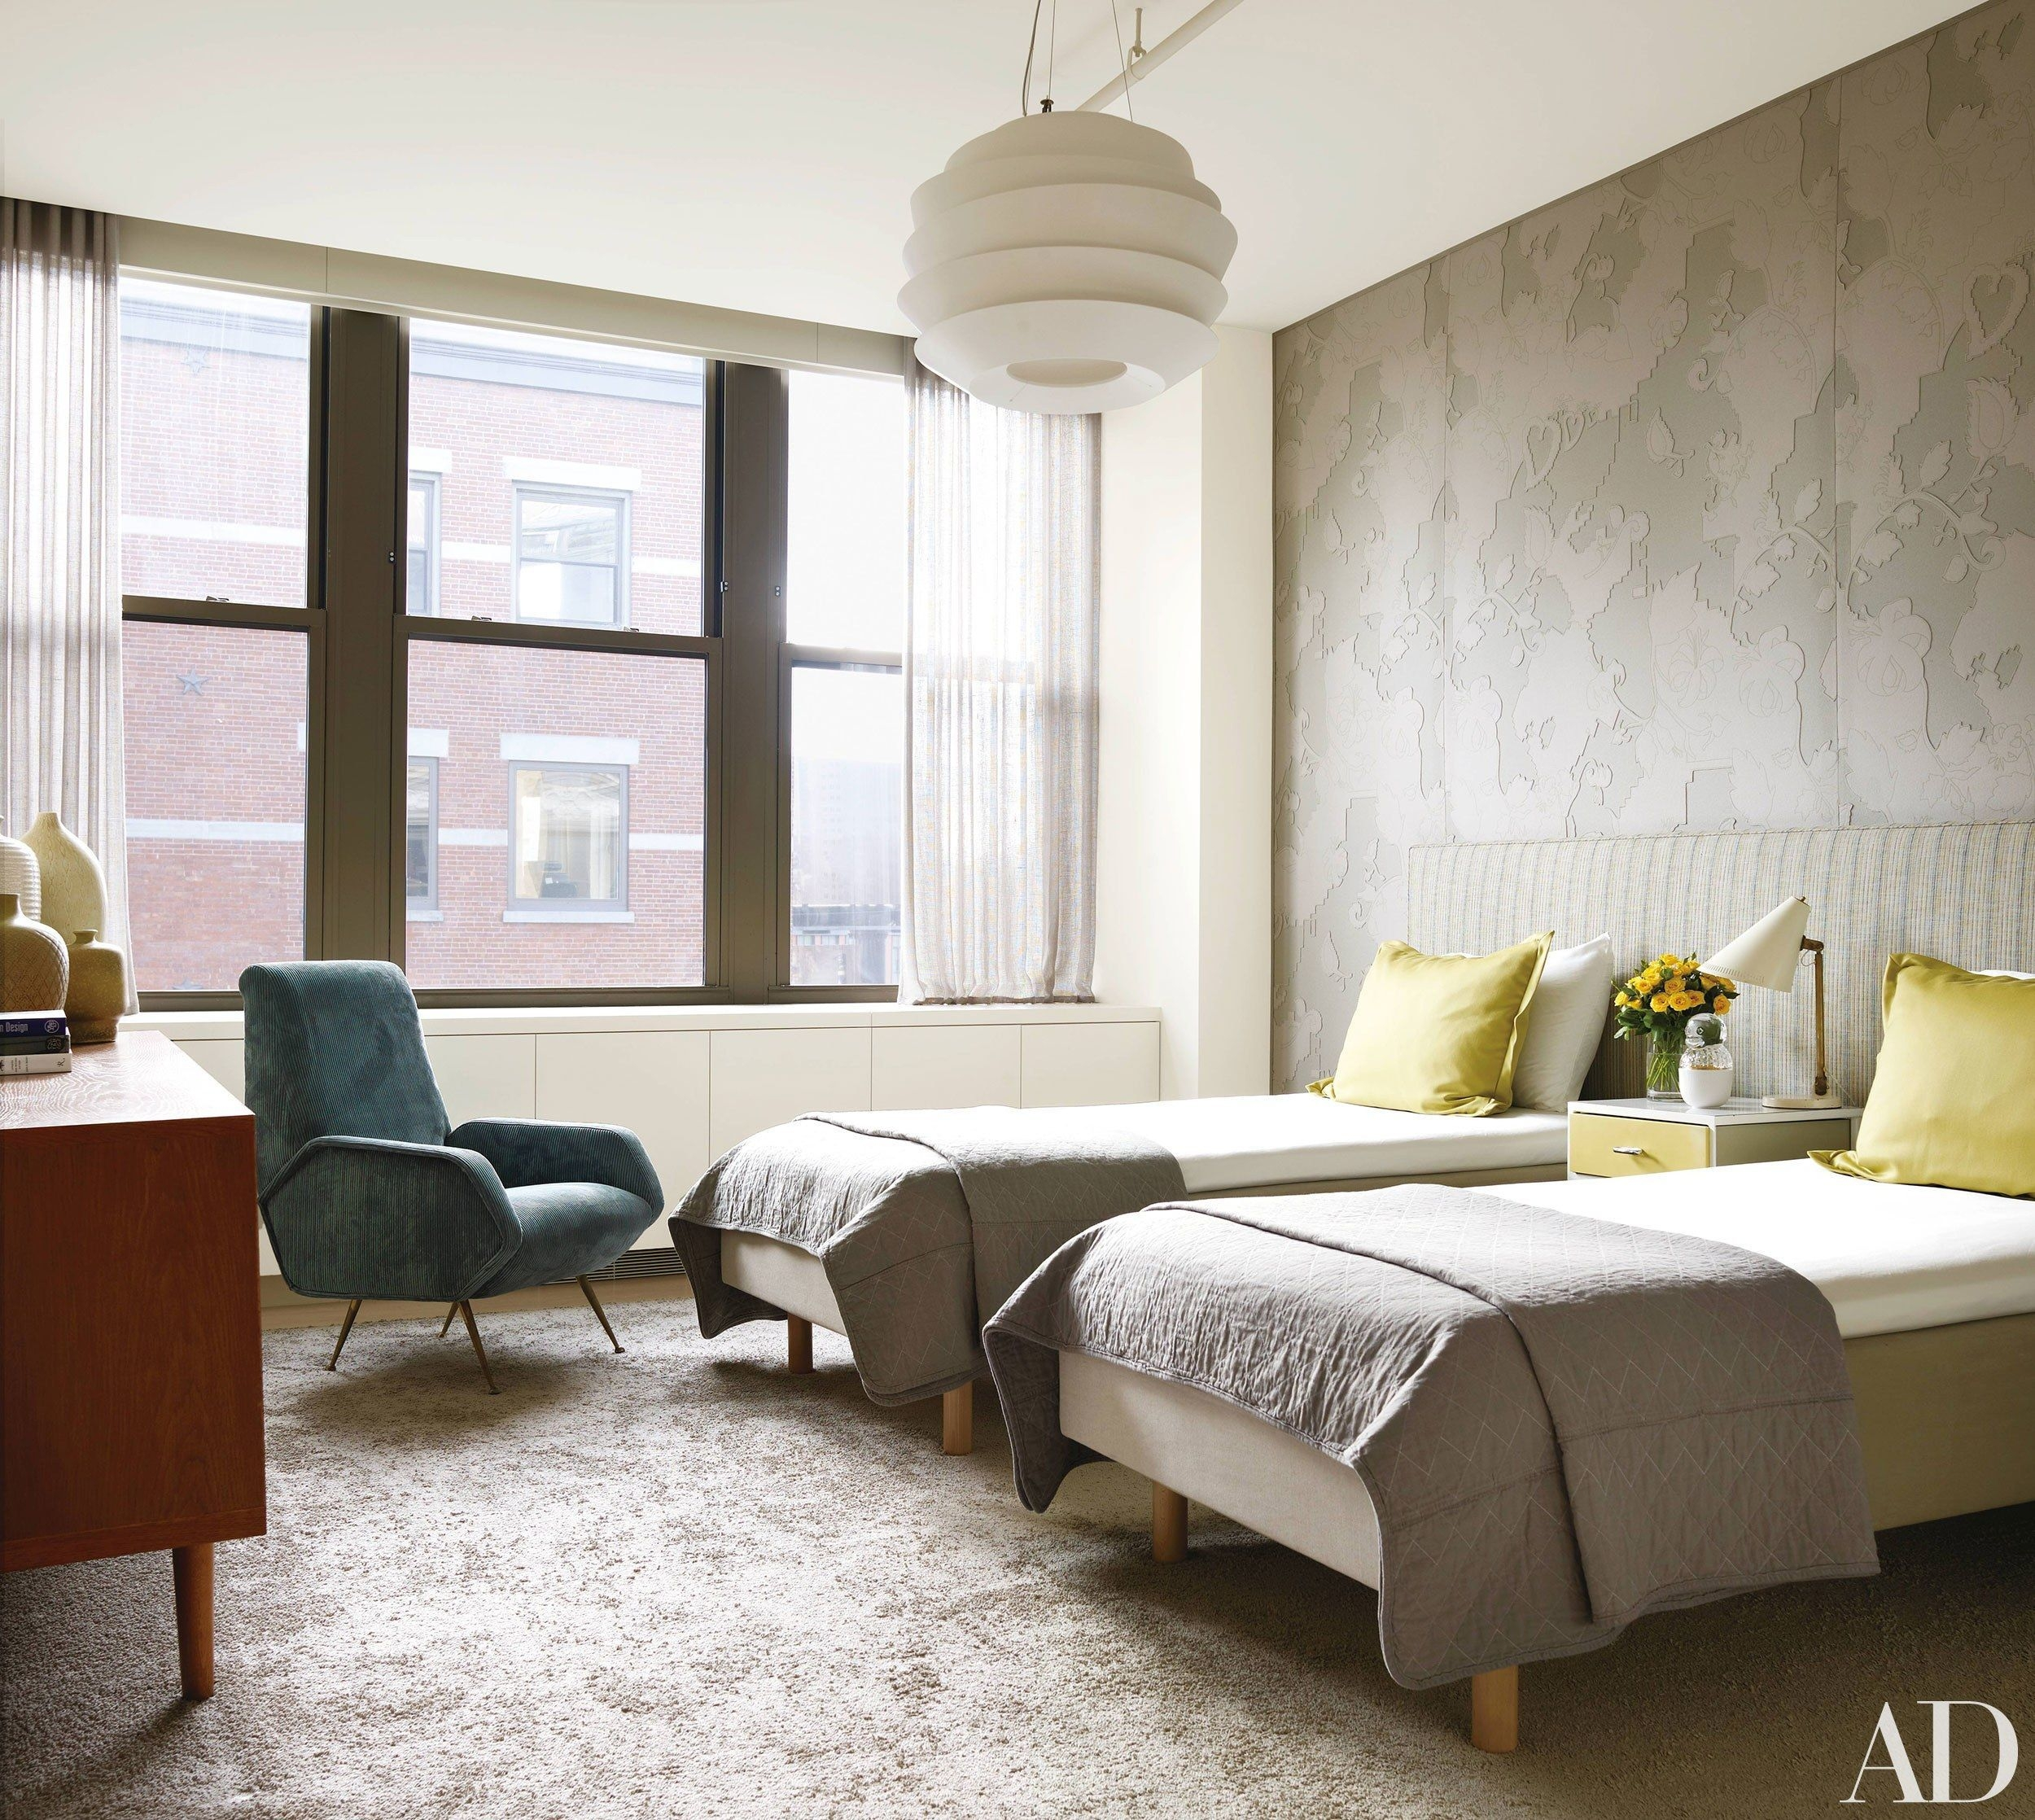 How To Decorate With Twin Beds In 2020  Modern Bedroom Home Decor Interior Design